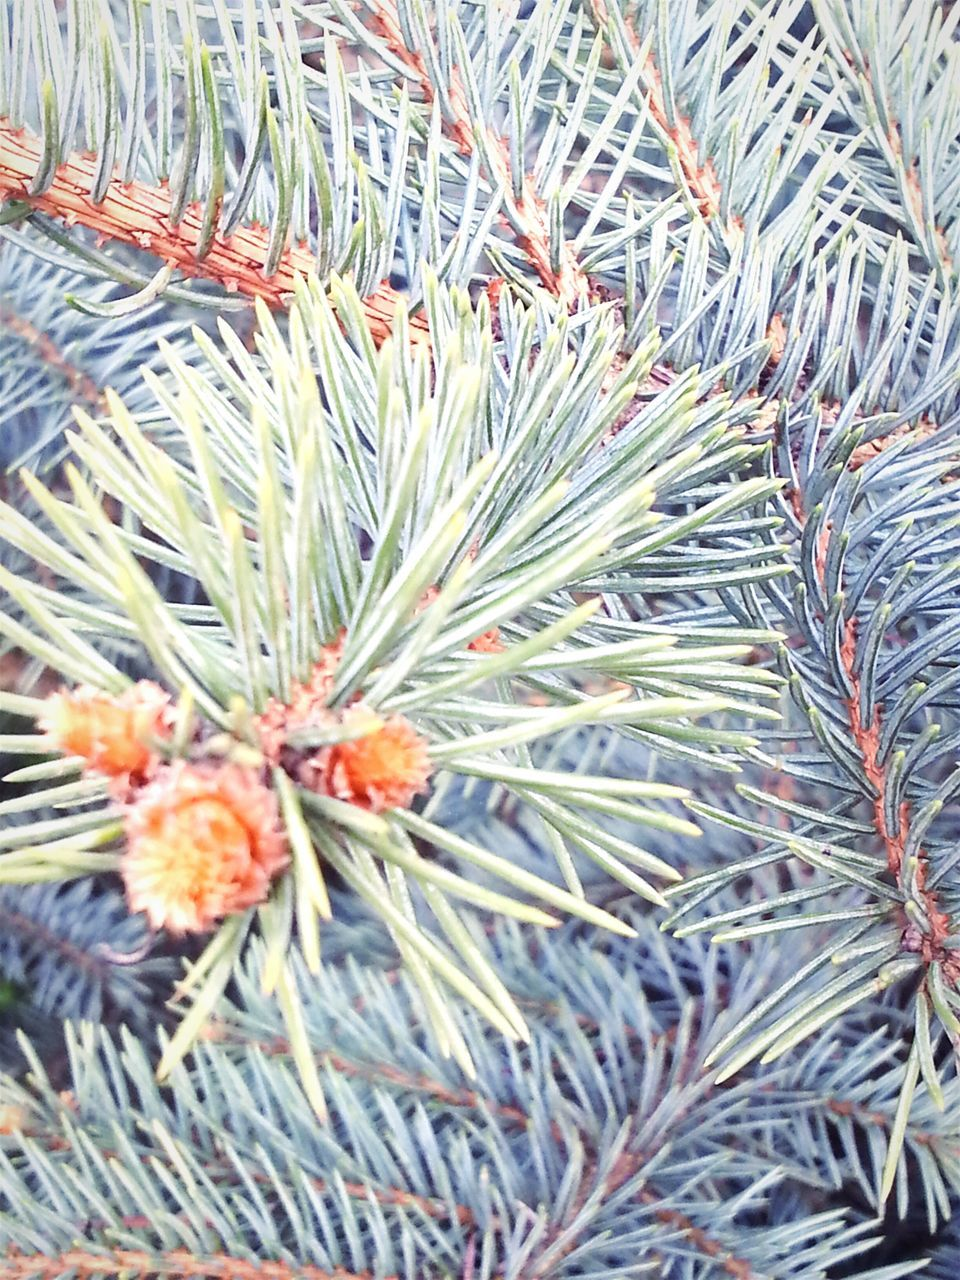 nature, plant, growth, beauty in nature, no people, pine tree, full frame, outdoors, backgrounds, day, freshness, close-up, tree